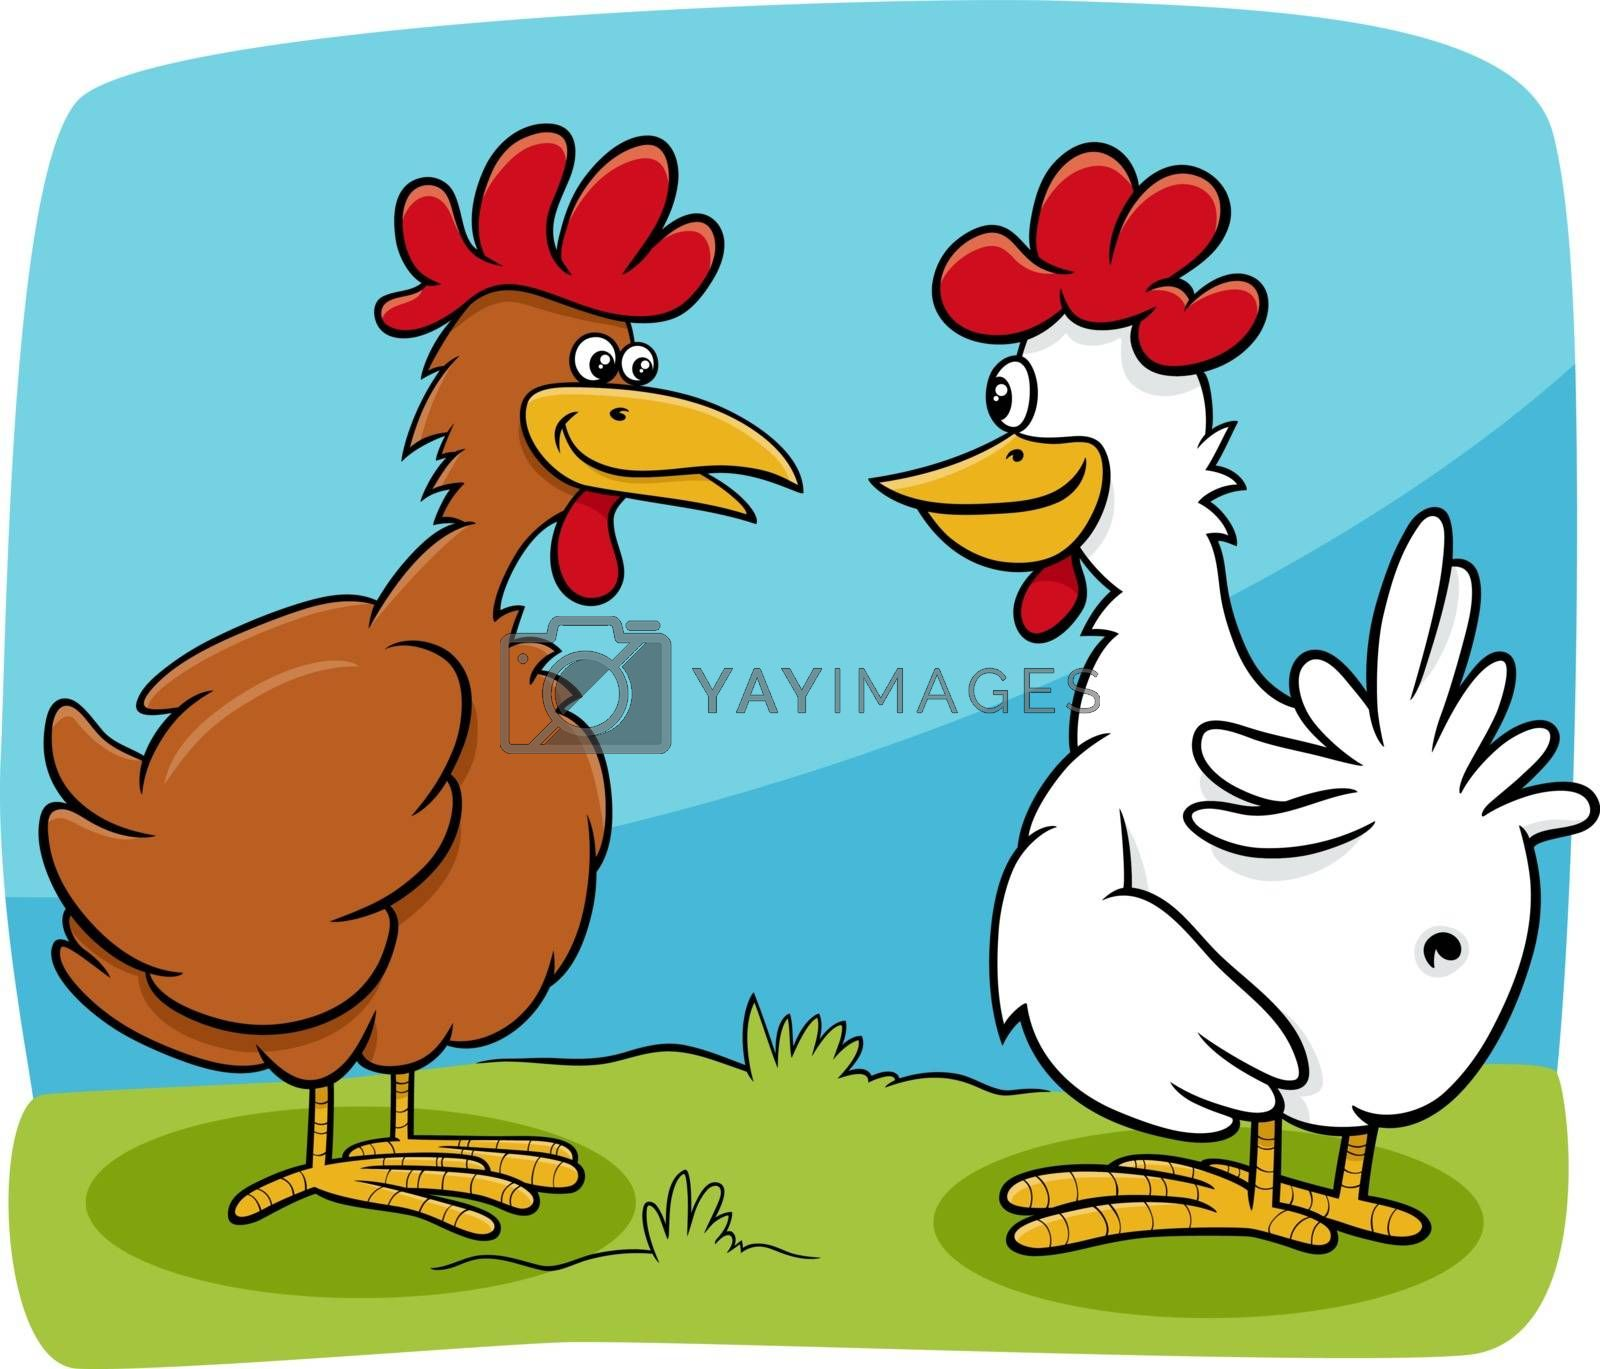 Cartoon illustration of two hens farm birds characters talking